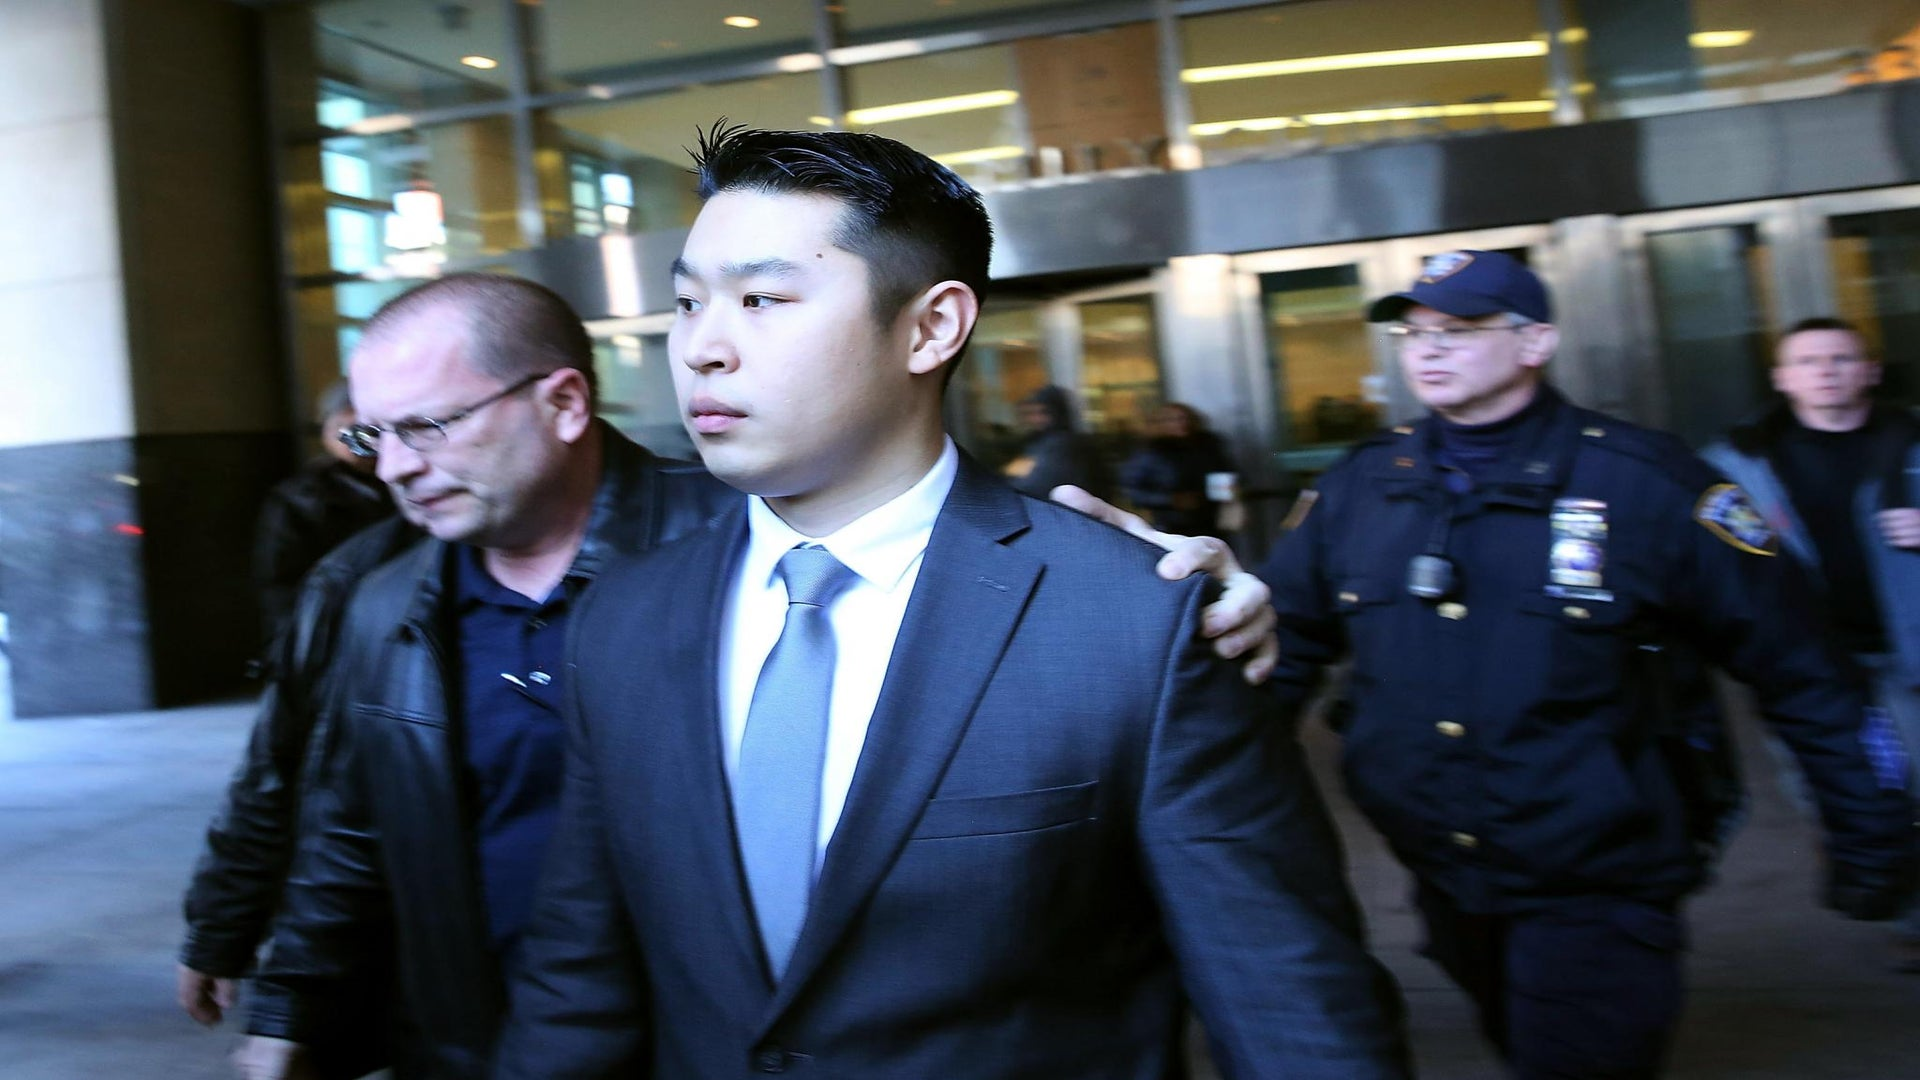 Jury Enters Final Deliberations for Officer Who Shot Akai Gurley in NYC Stairwell